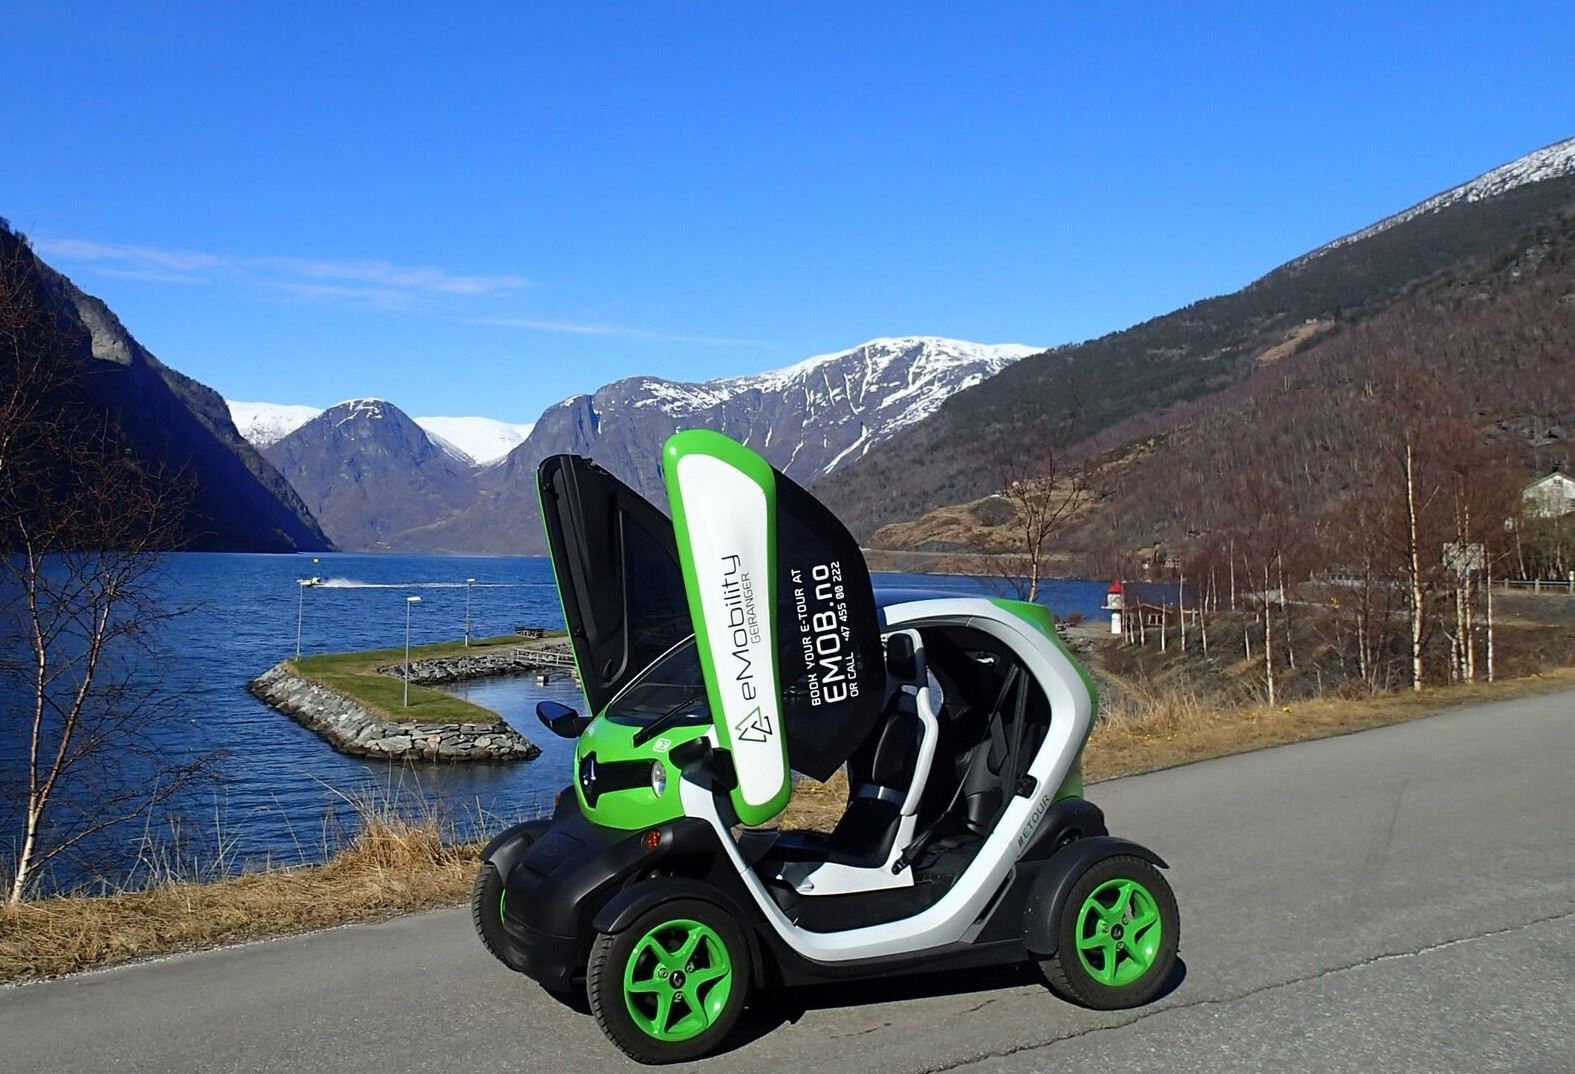 2 - hour eMobility rental